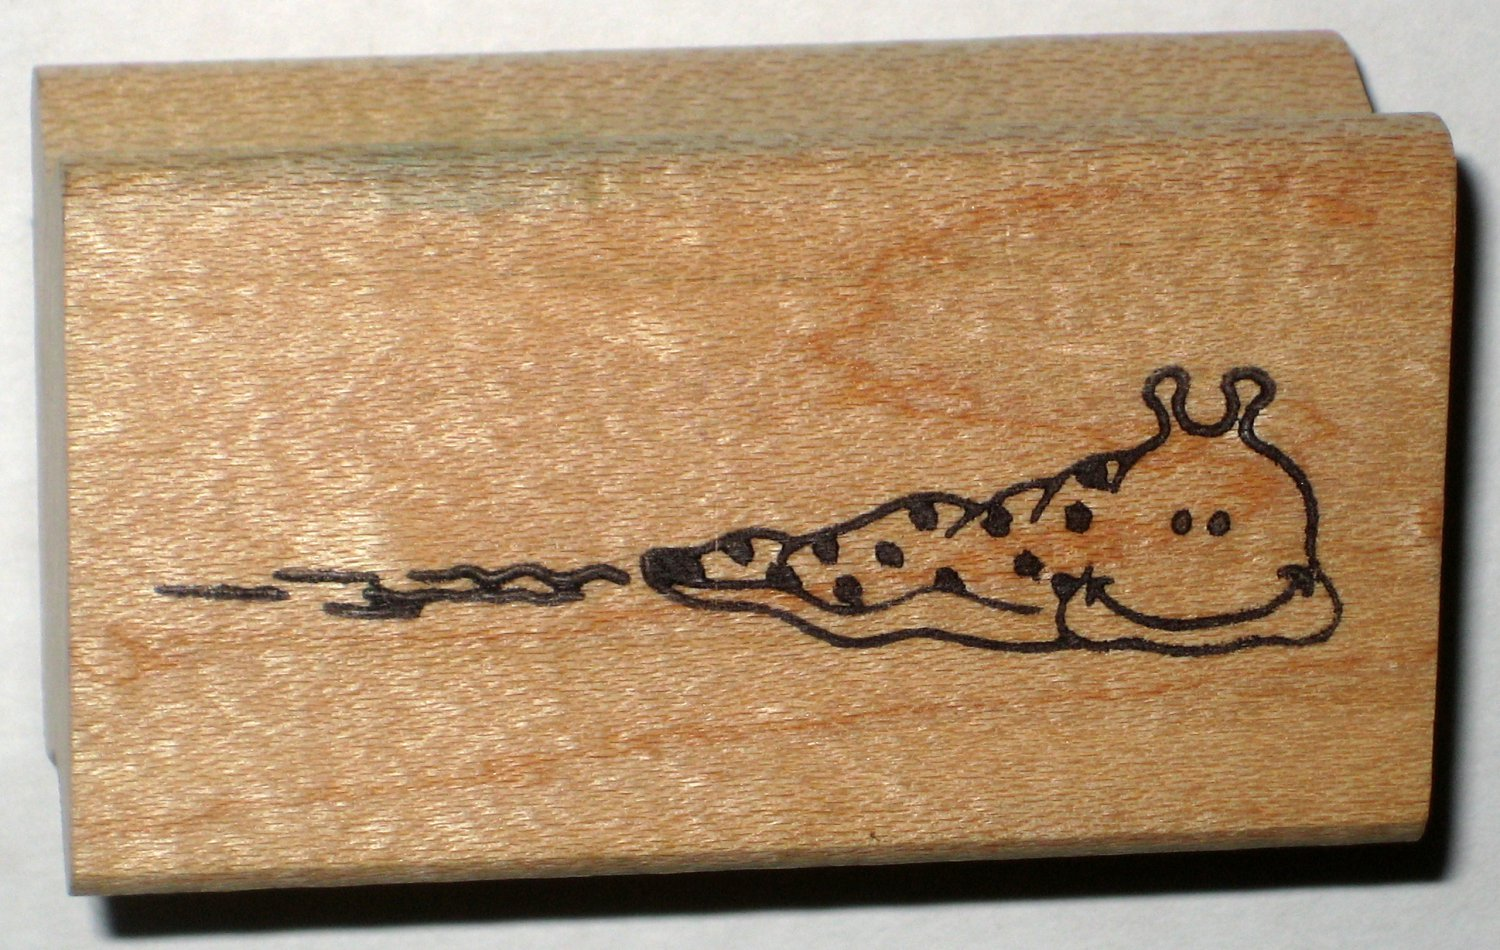 Slug Snail Rubber Stamp Stamper Wood Mounted Great Impressions 1989